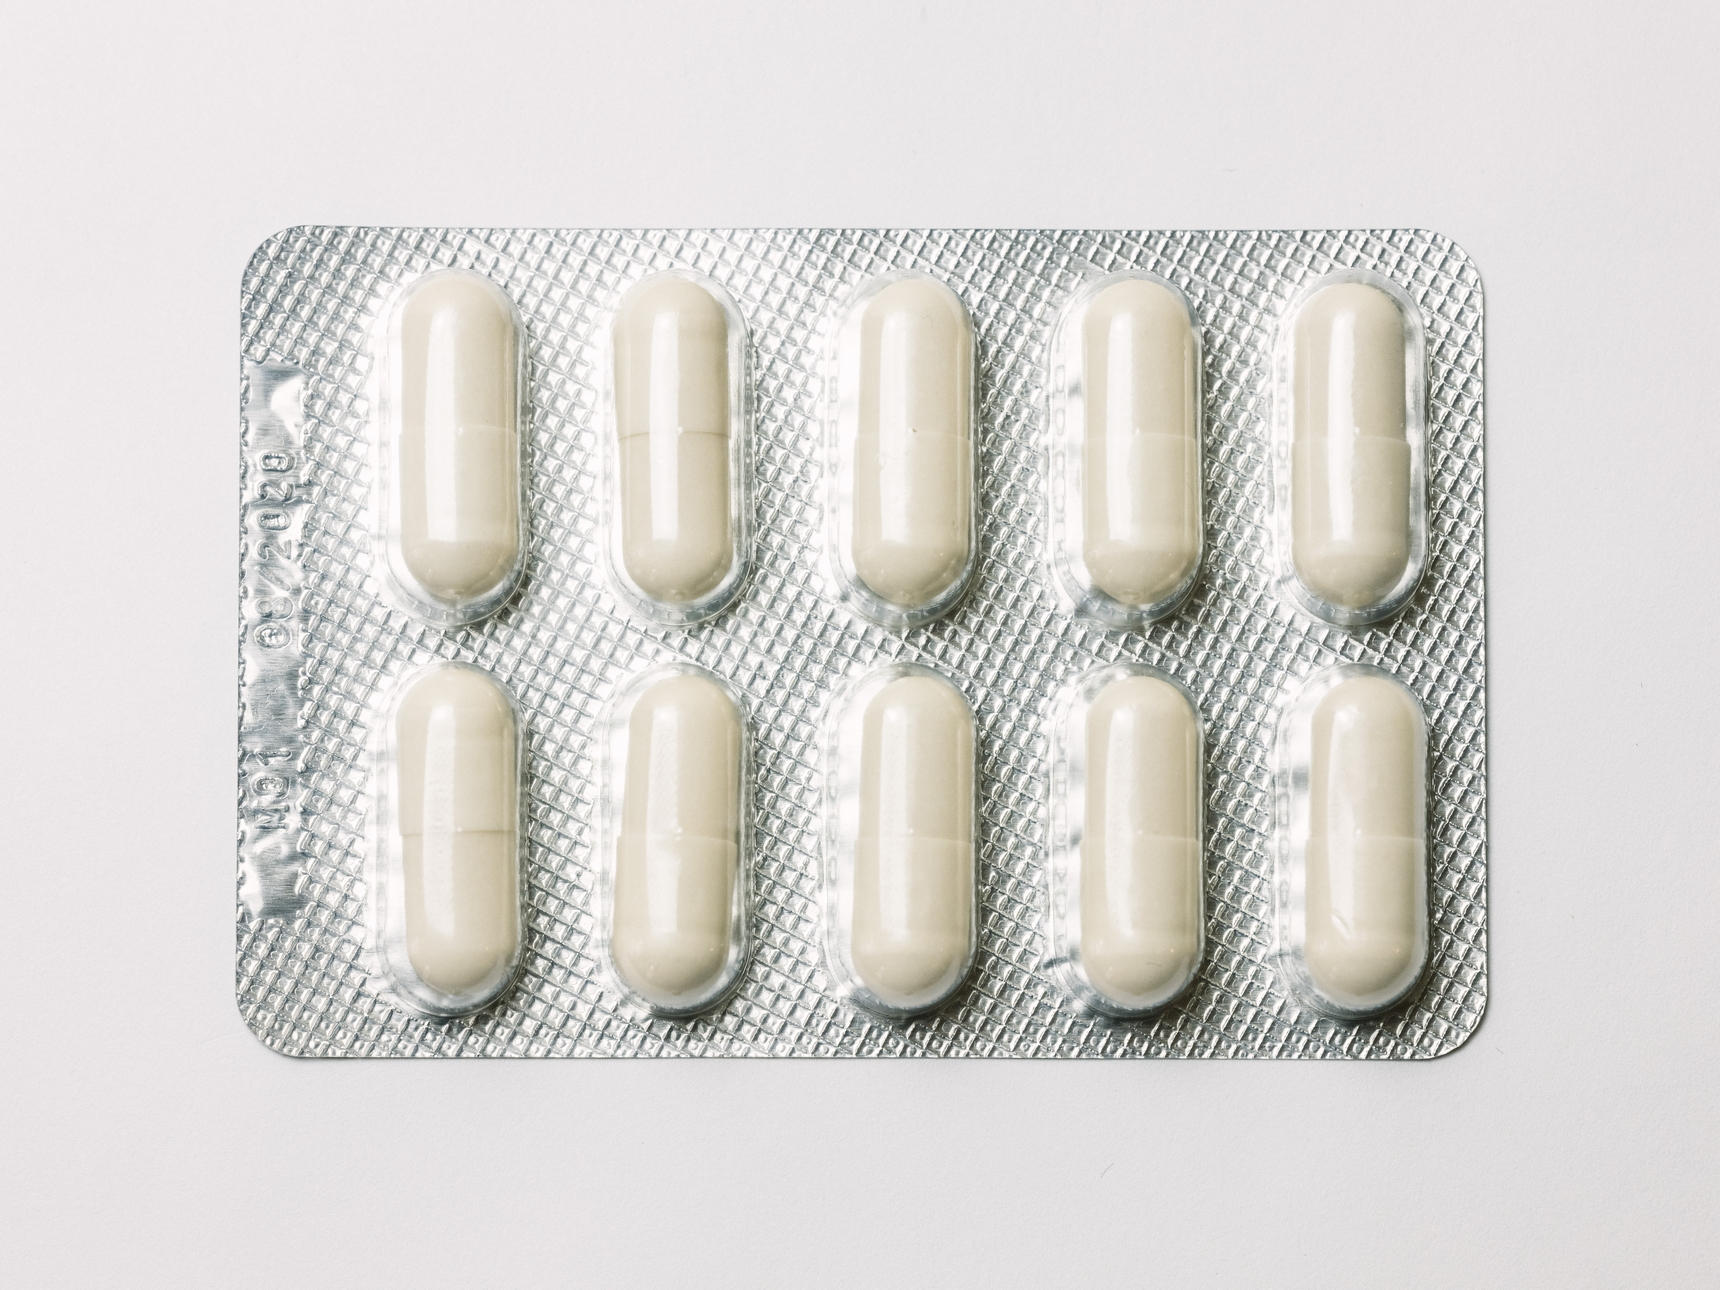 Pills in Packaging Chloroquine 01 by Daniel Foster CC CC BY-NC-SA 2.0